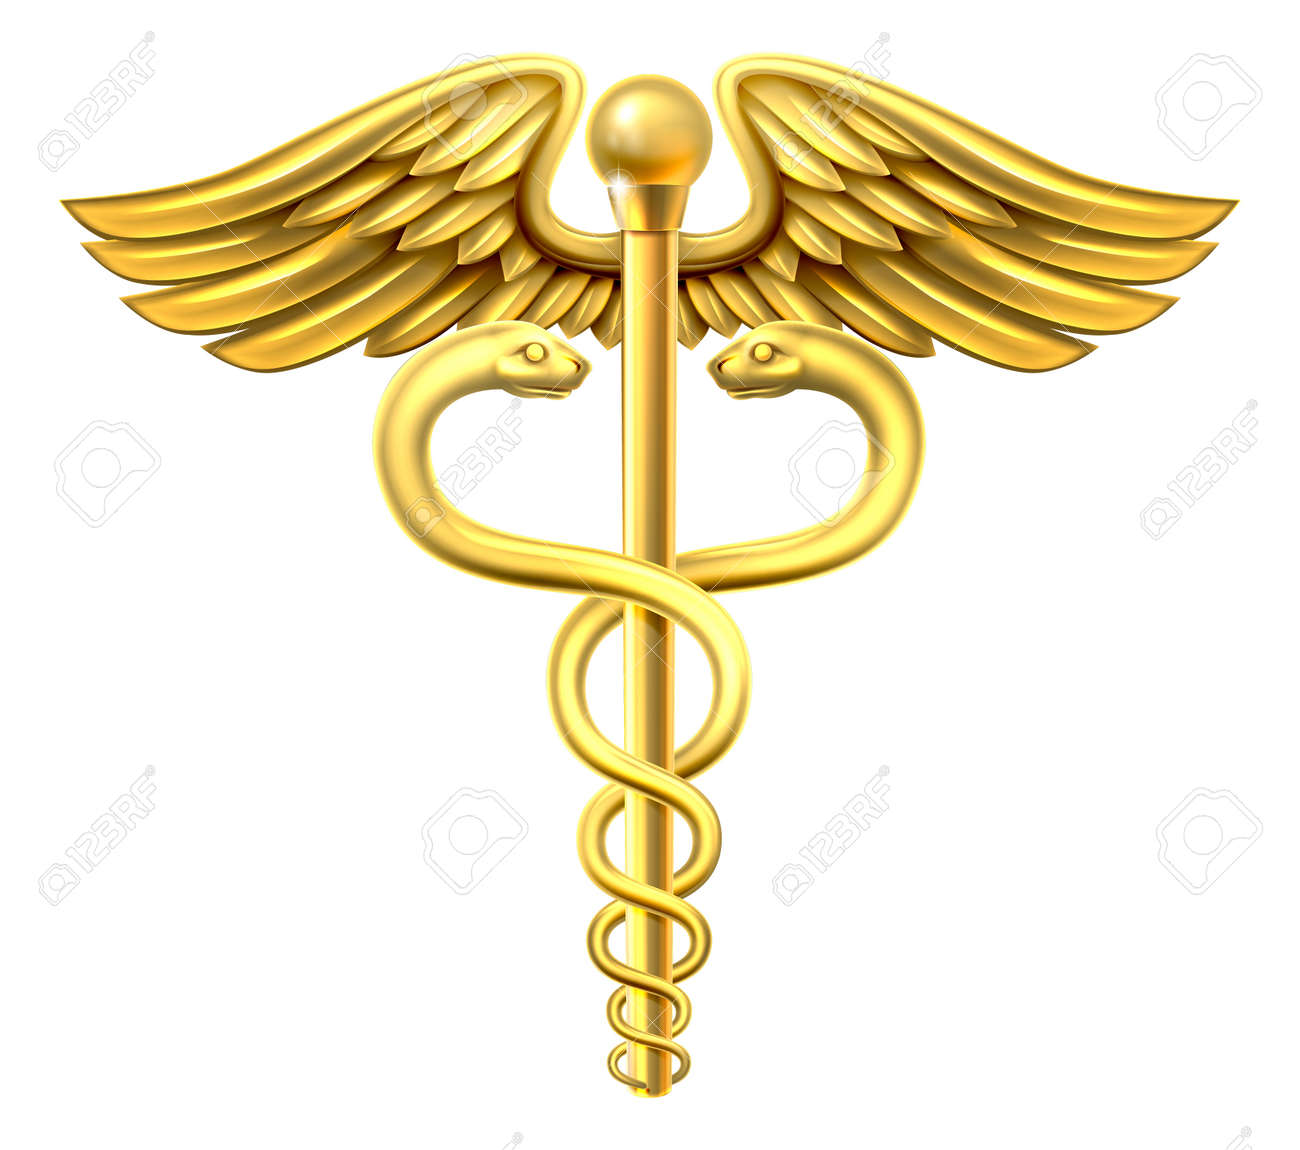 A gold caduceus medical symbol or symbol for commerce featuring intertwined snakes around a winged rod - 51305472